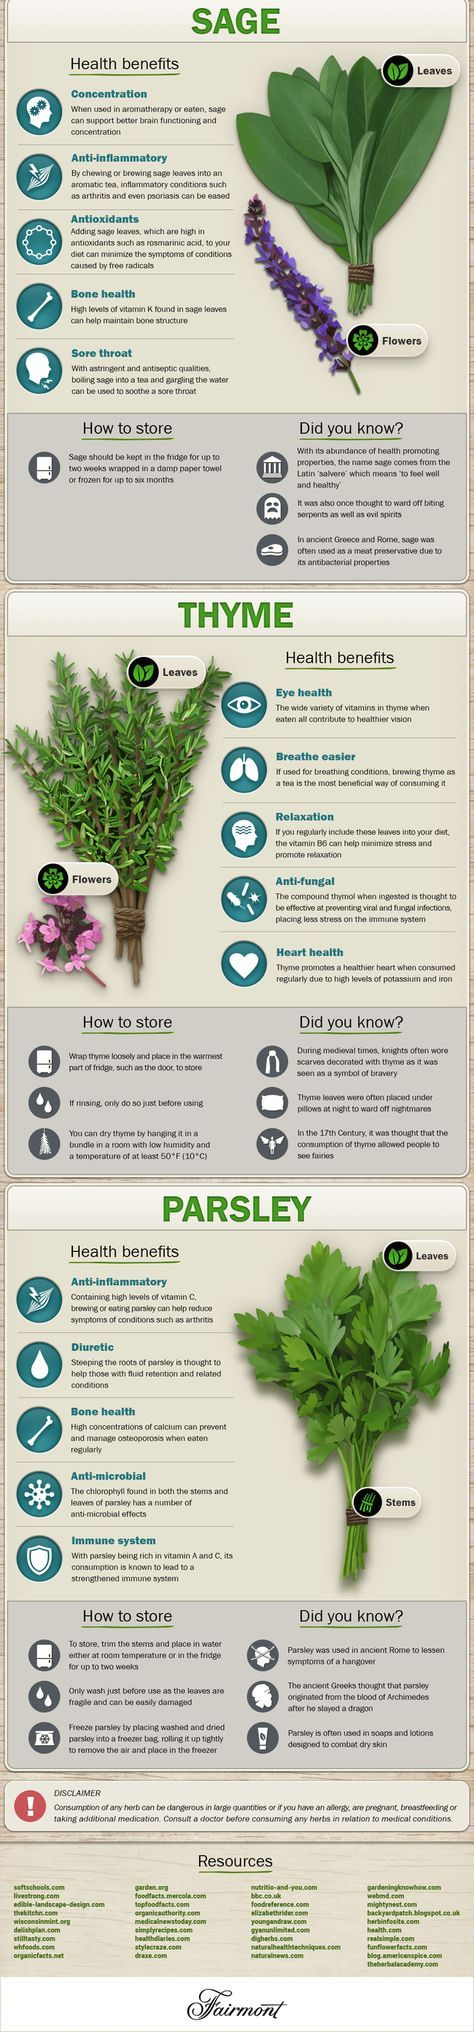 Learn what 9 of the most common herbs can do to boost your health and wellbeing.